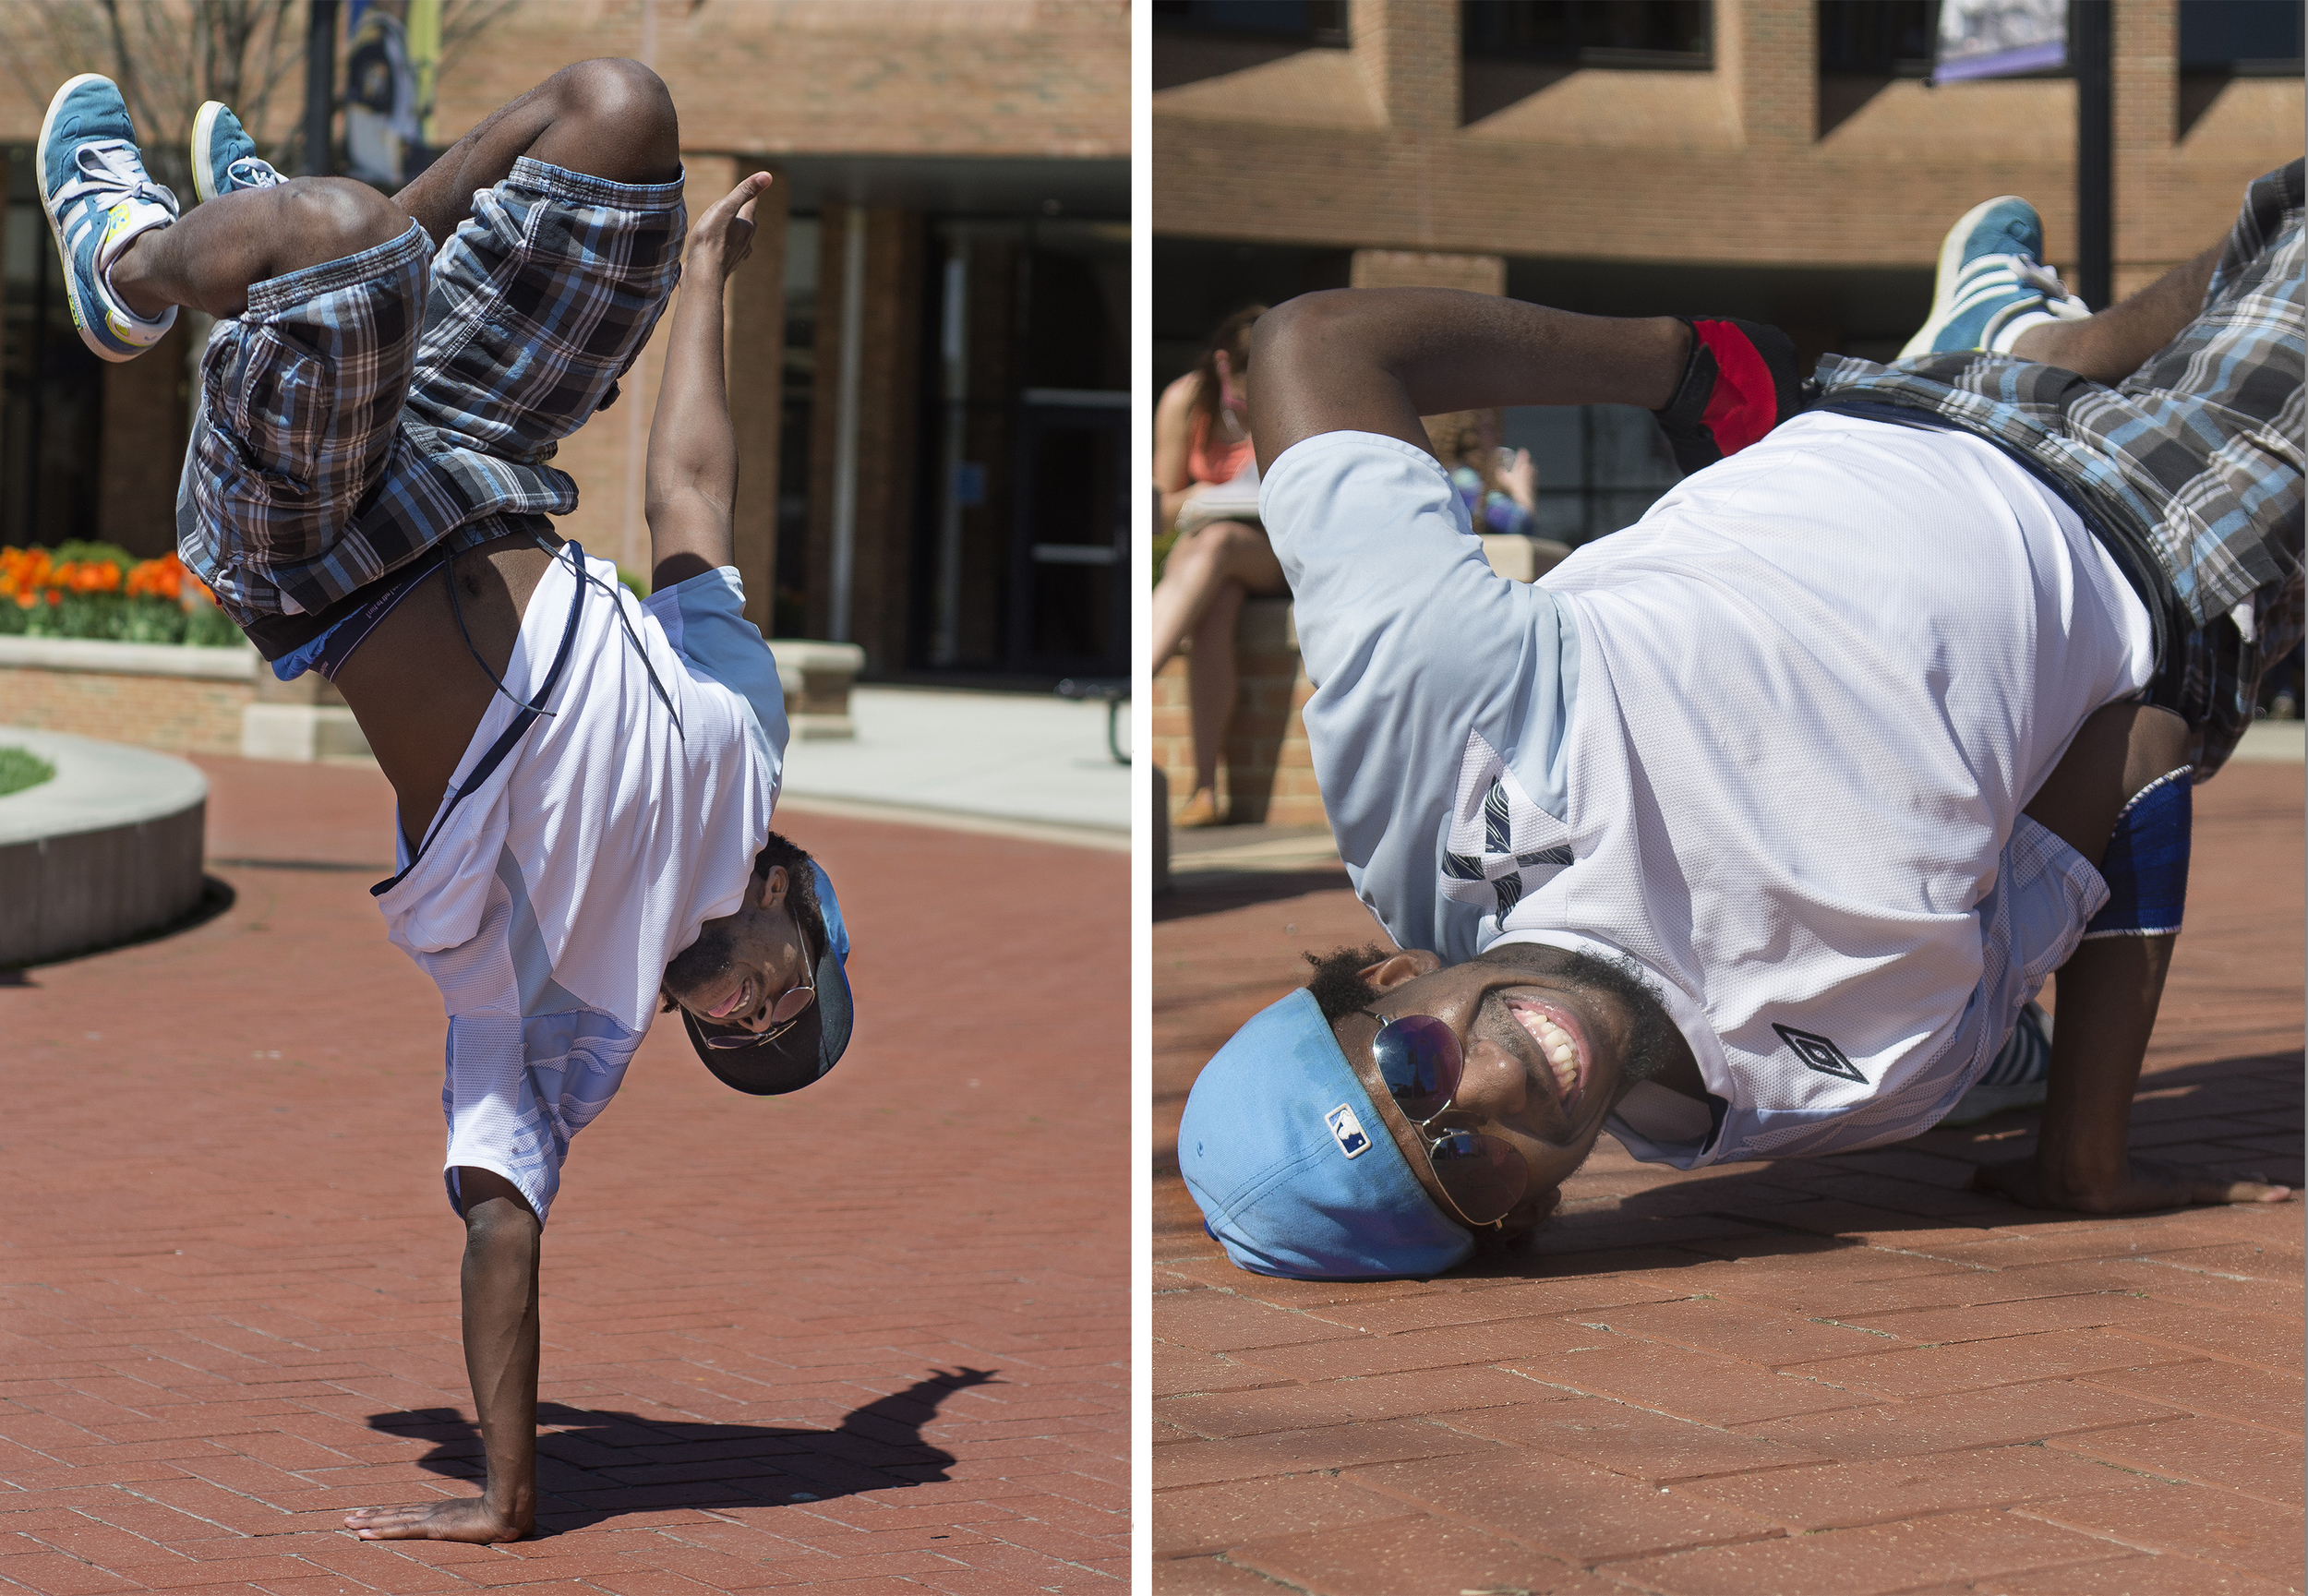 """Senior applied engineering major Alla Kora practices his break dancing at Kent State's Risman Plaza on April 29, 2015. When asked if he would change one thing about himself, Kora said he would not change anything. """"I love myself, I love who I am,"""" he said. """"I cannot say I am perfect, but life is good."""""""